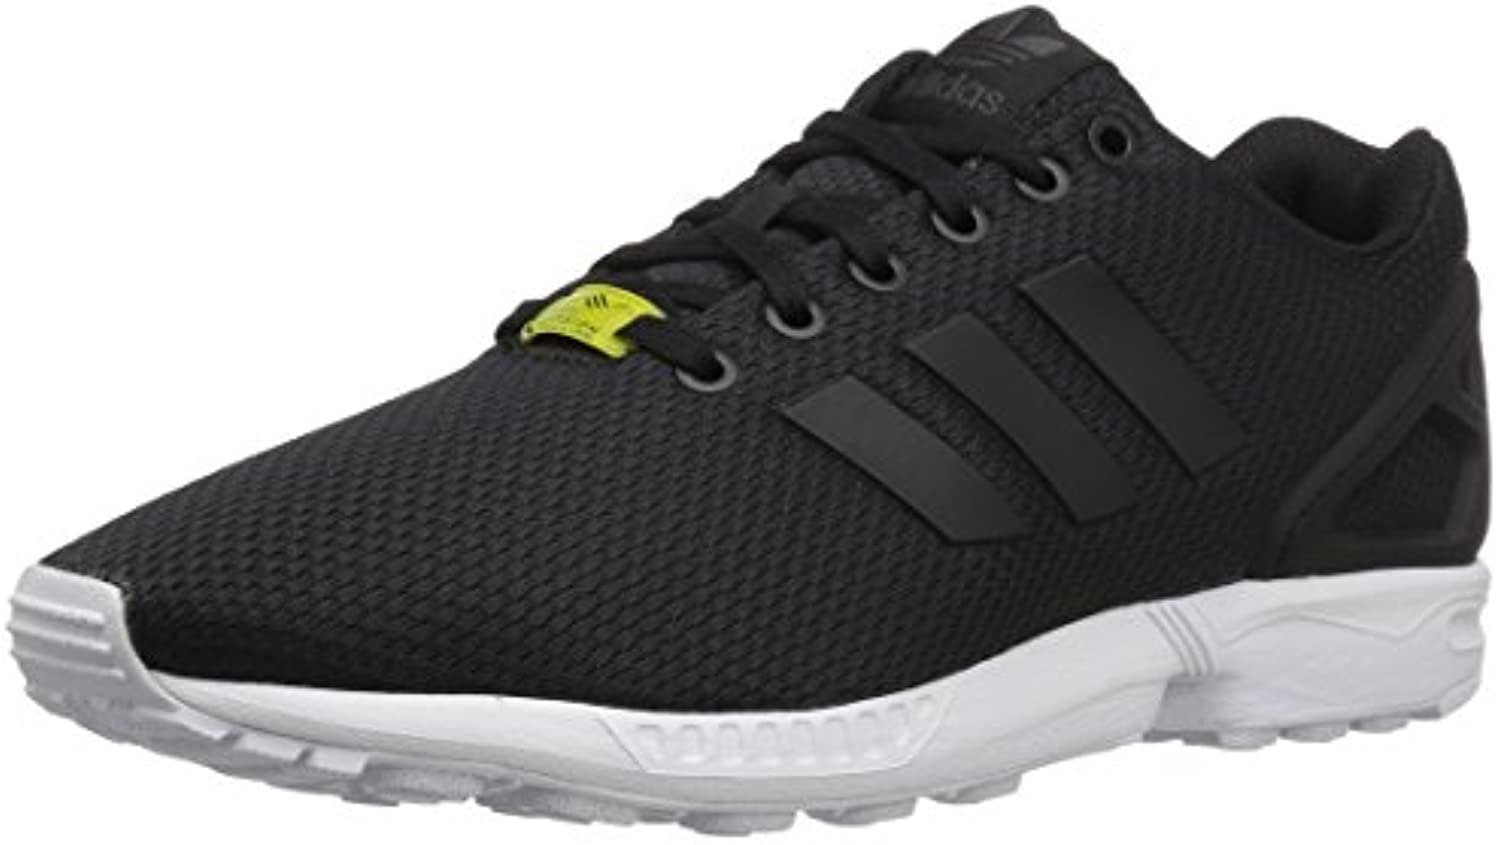 Adidas Men's ZX Flux New Limited Black Edition Energy Color Sneakers M19840 Black Limited 9UK 4a3c4c